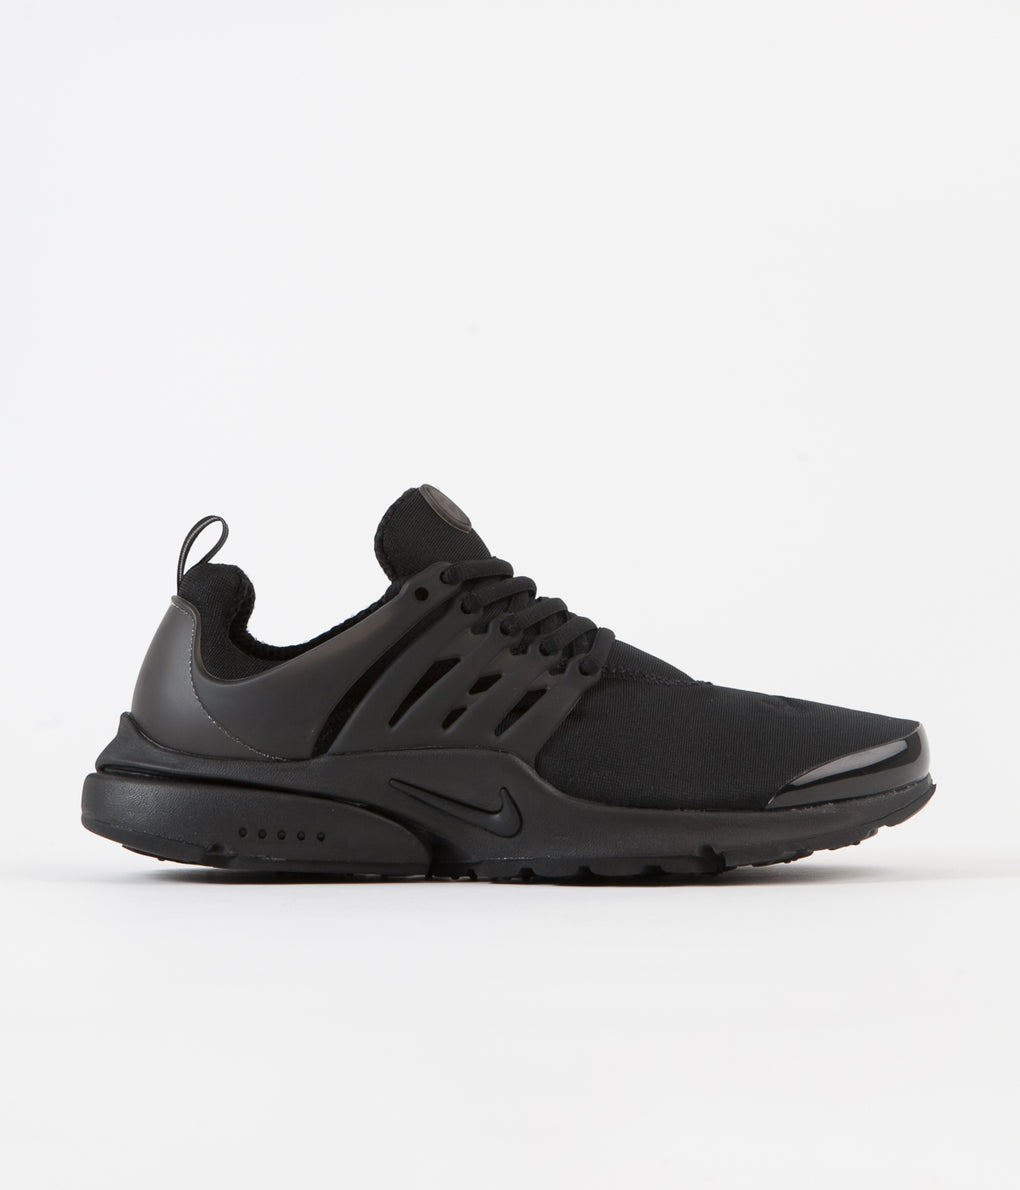 Nike Air Presto Shoes - Black / Black - Black